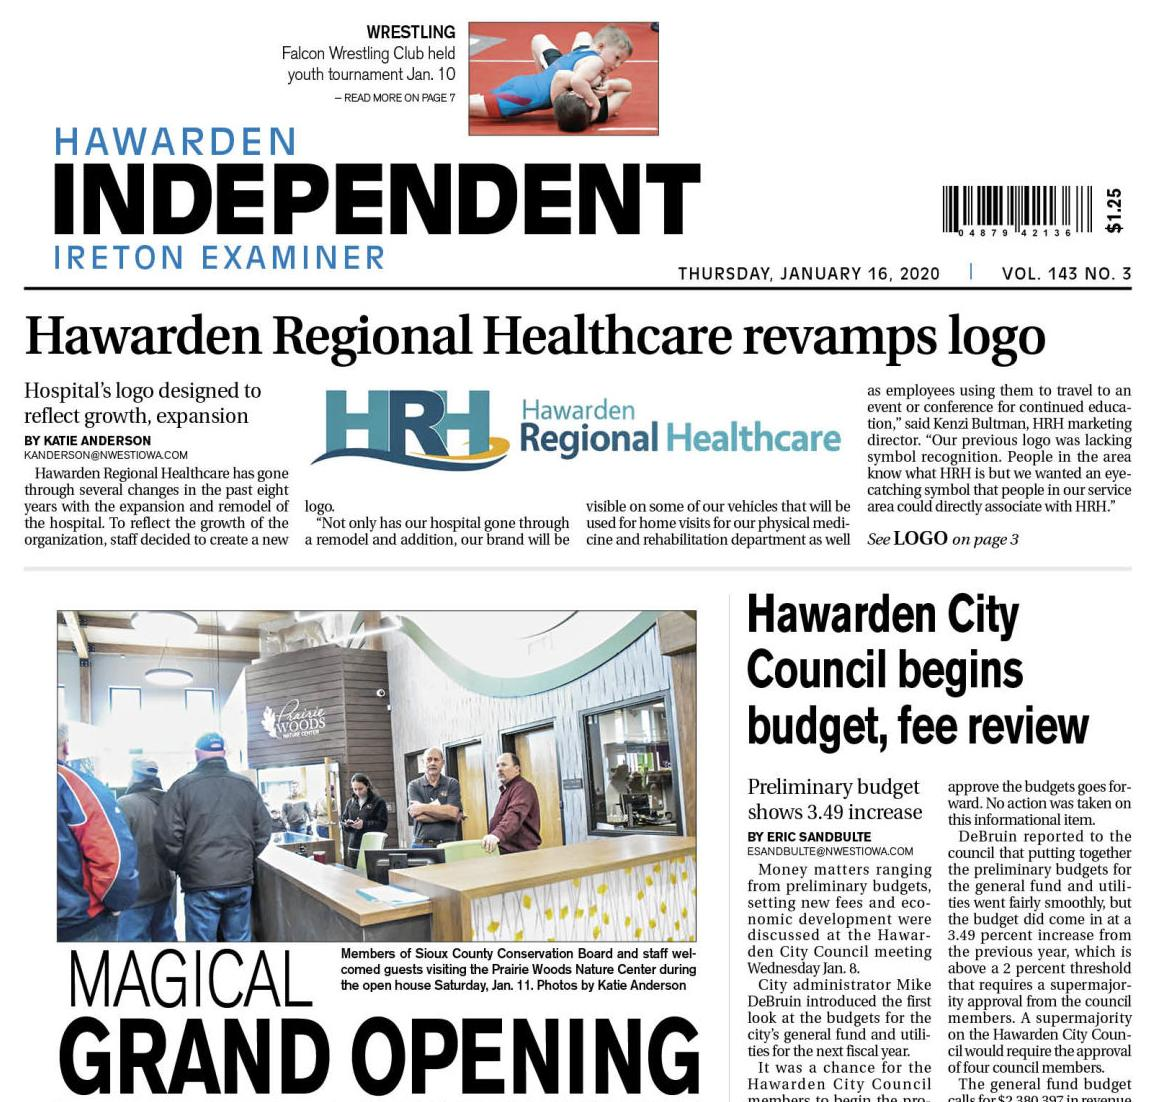 Hawarden Independent/Ireton Examiner Jan. 18, 2020